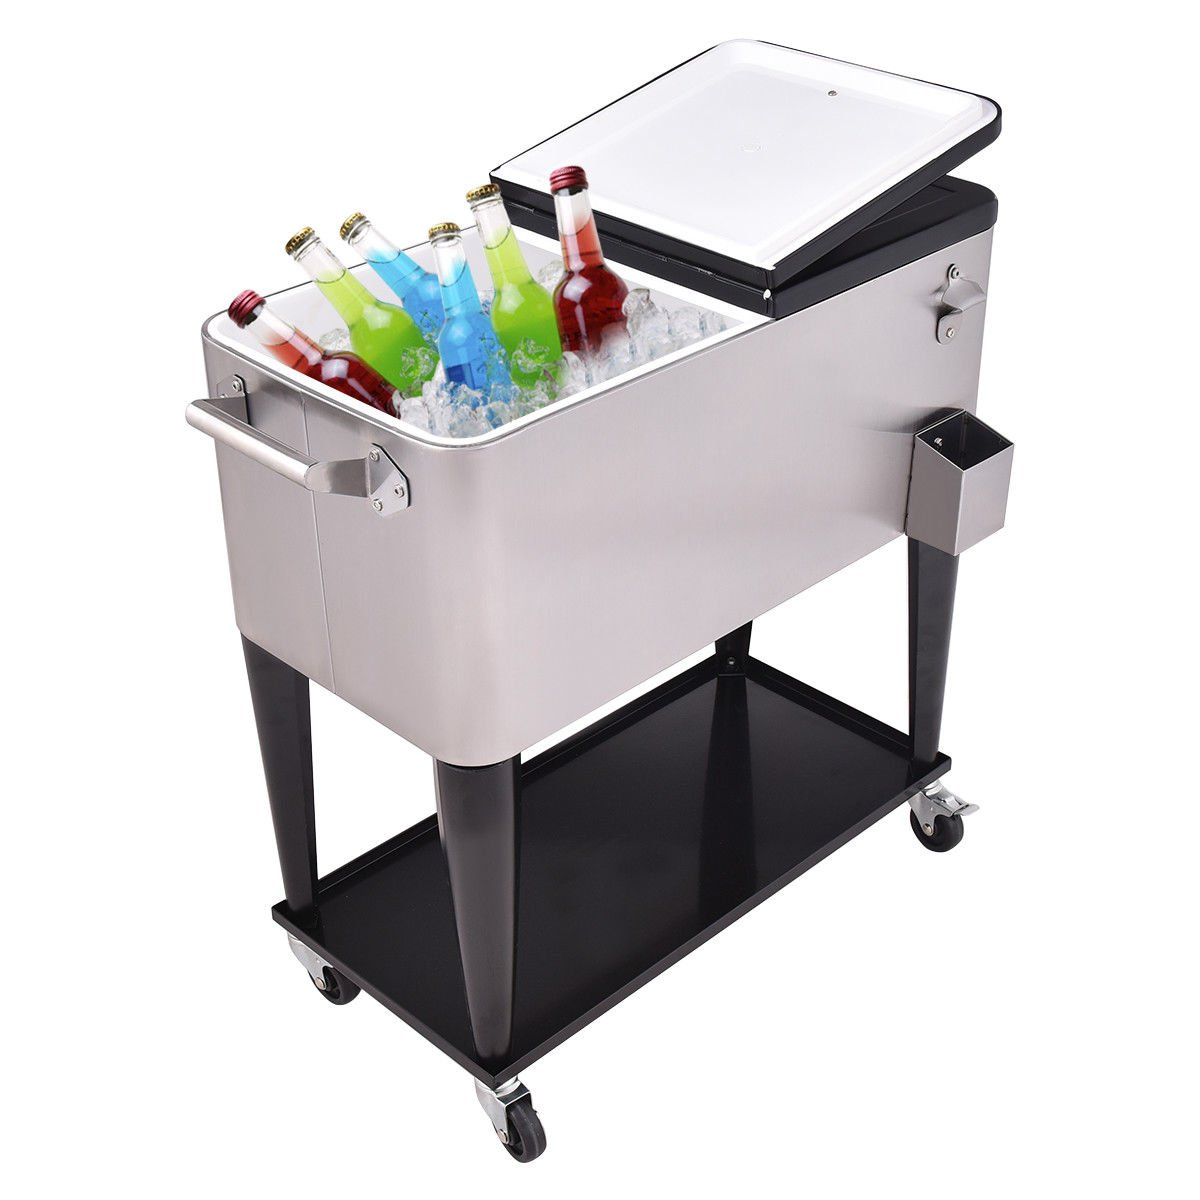 Giantex Patio Cooler Rolling Cart Outdoor Portable Stainless Steel Ice Beverage Chest Pool with Bottle Opener, 80 Quart